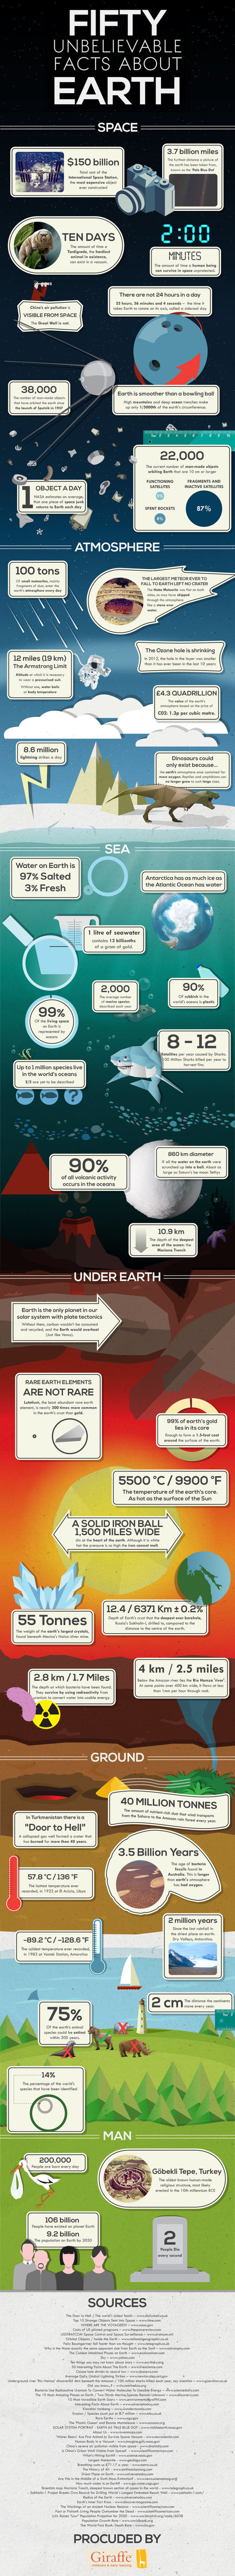 Fifty Unbelievable Facts About Earth [INFOGRAPHIC] | STEM Connections | Scoop.it